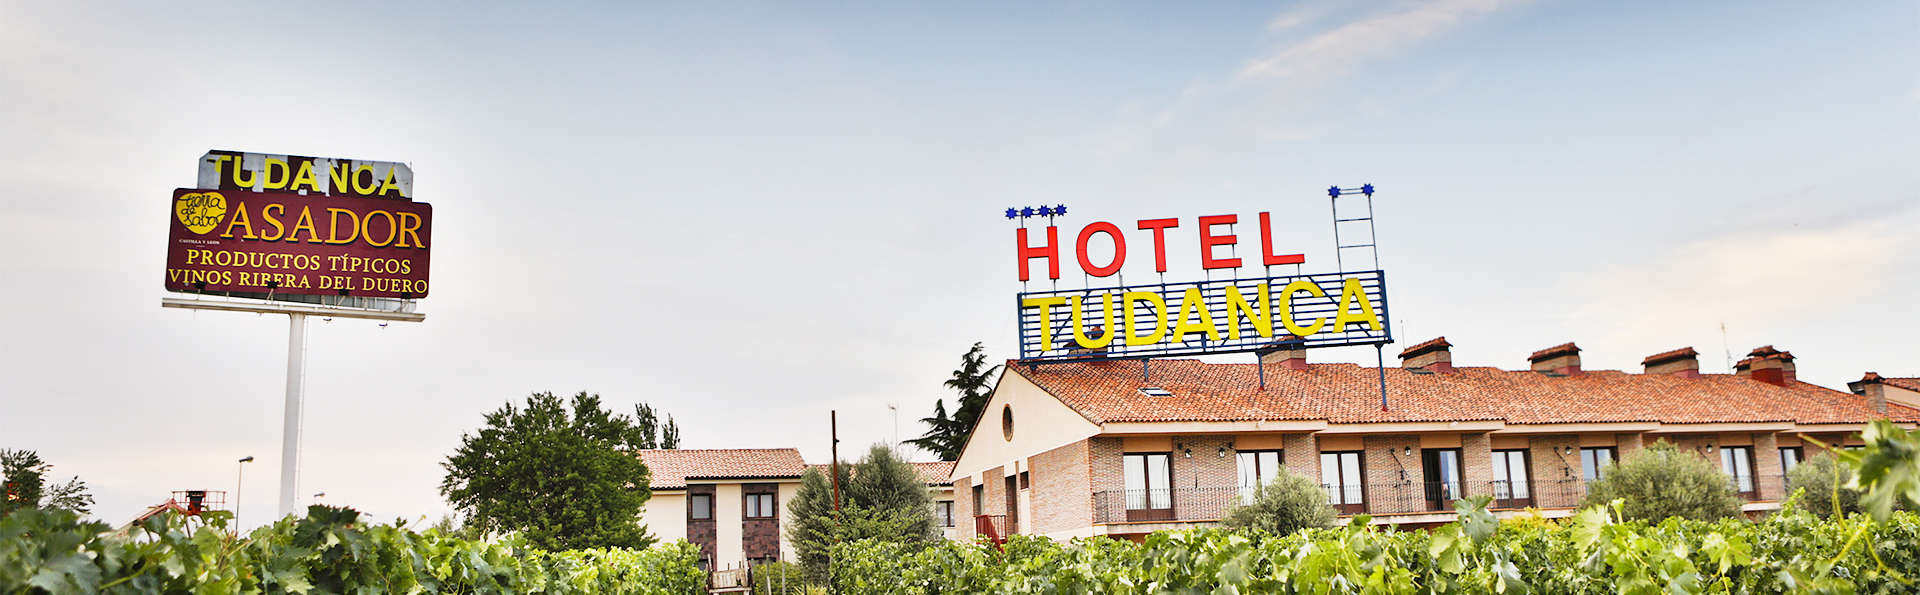 Hotel Spa Tudanca Aranda - EDIT_front1.jpg